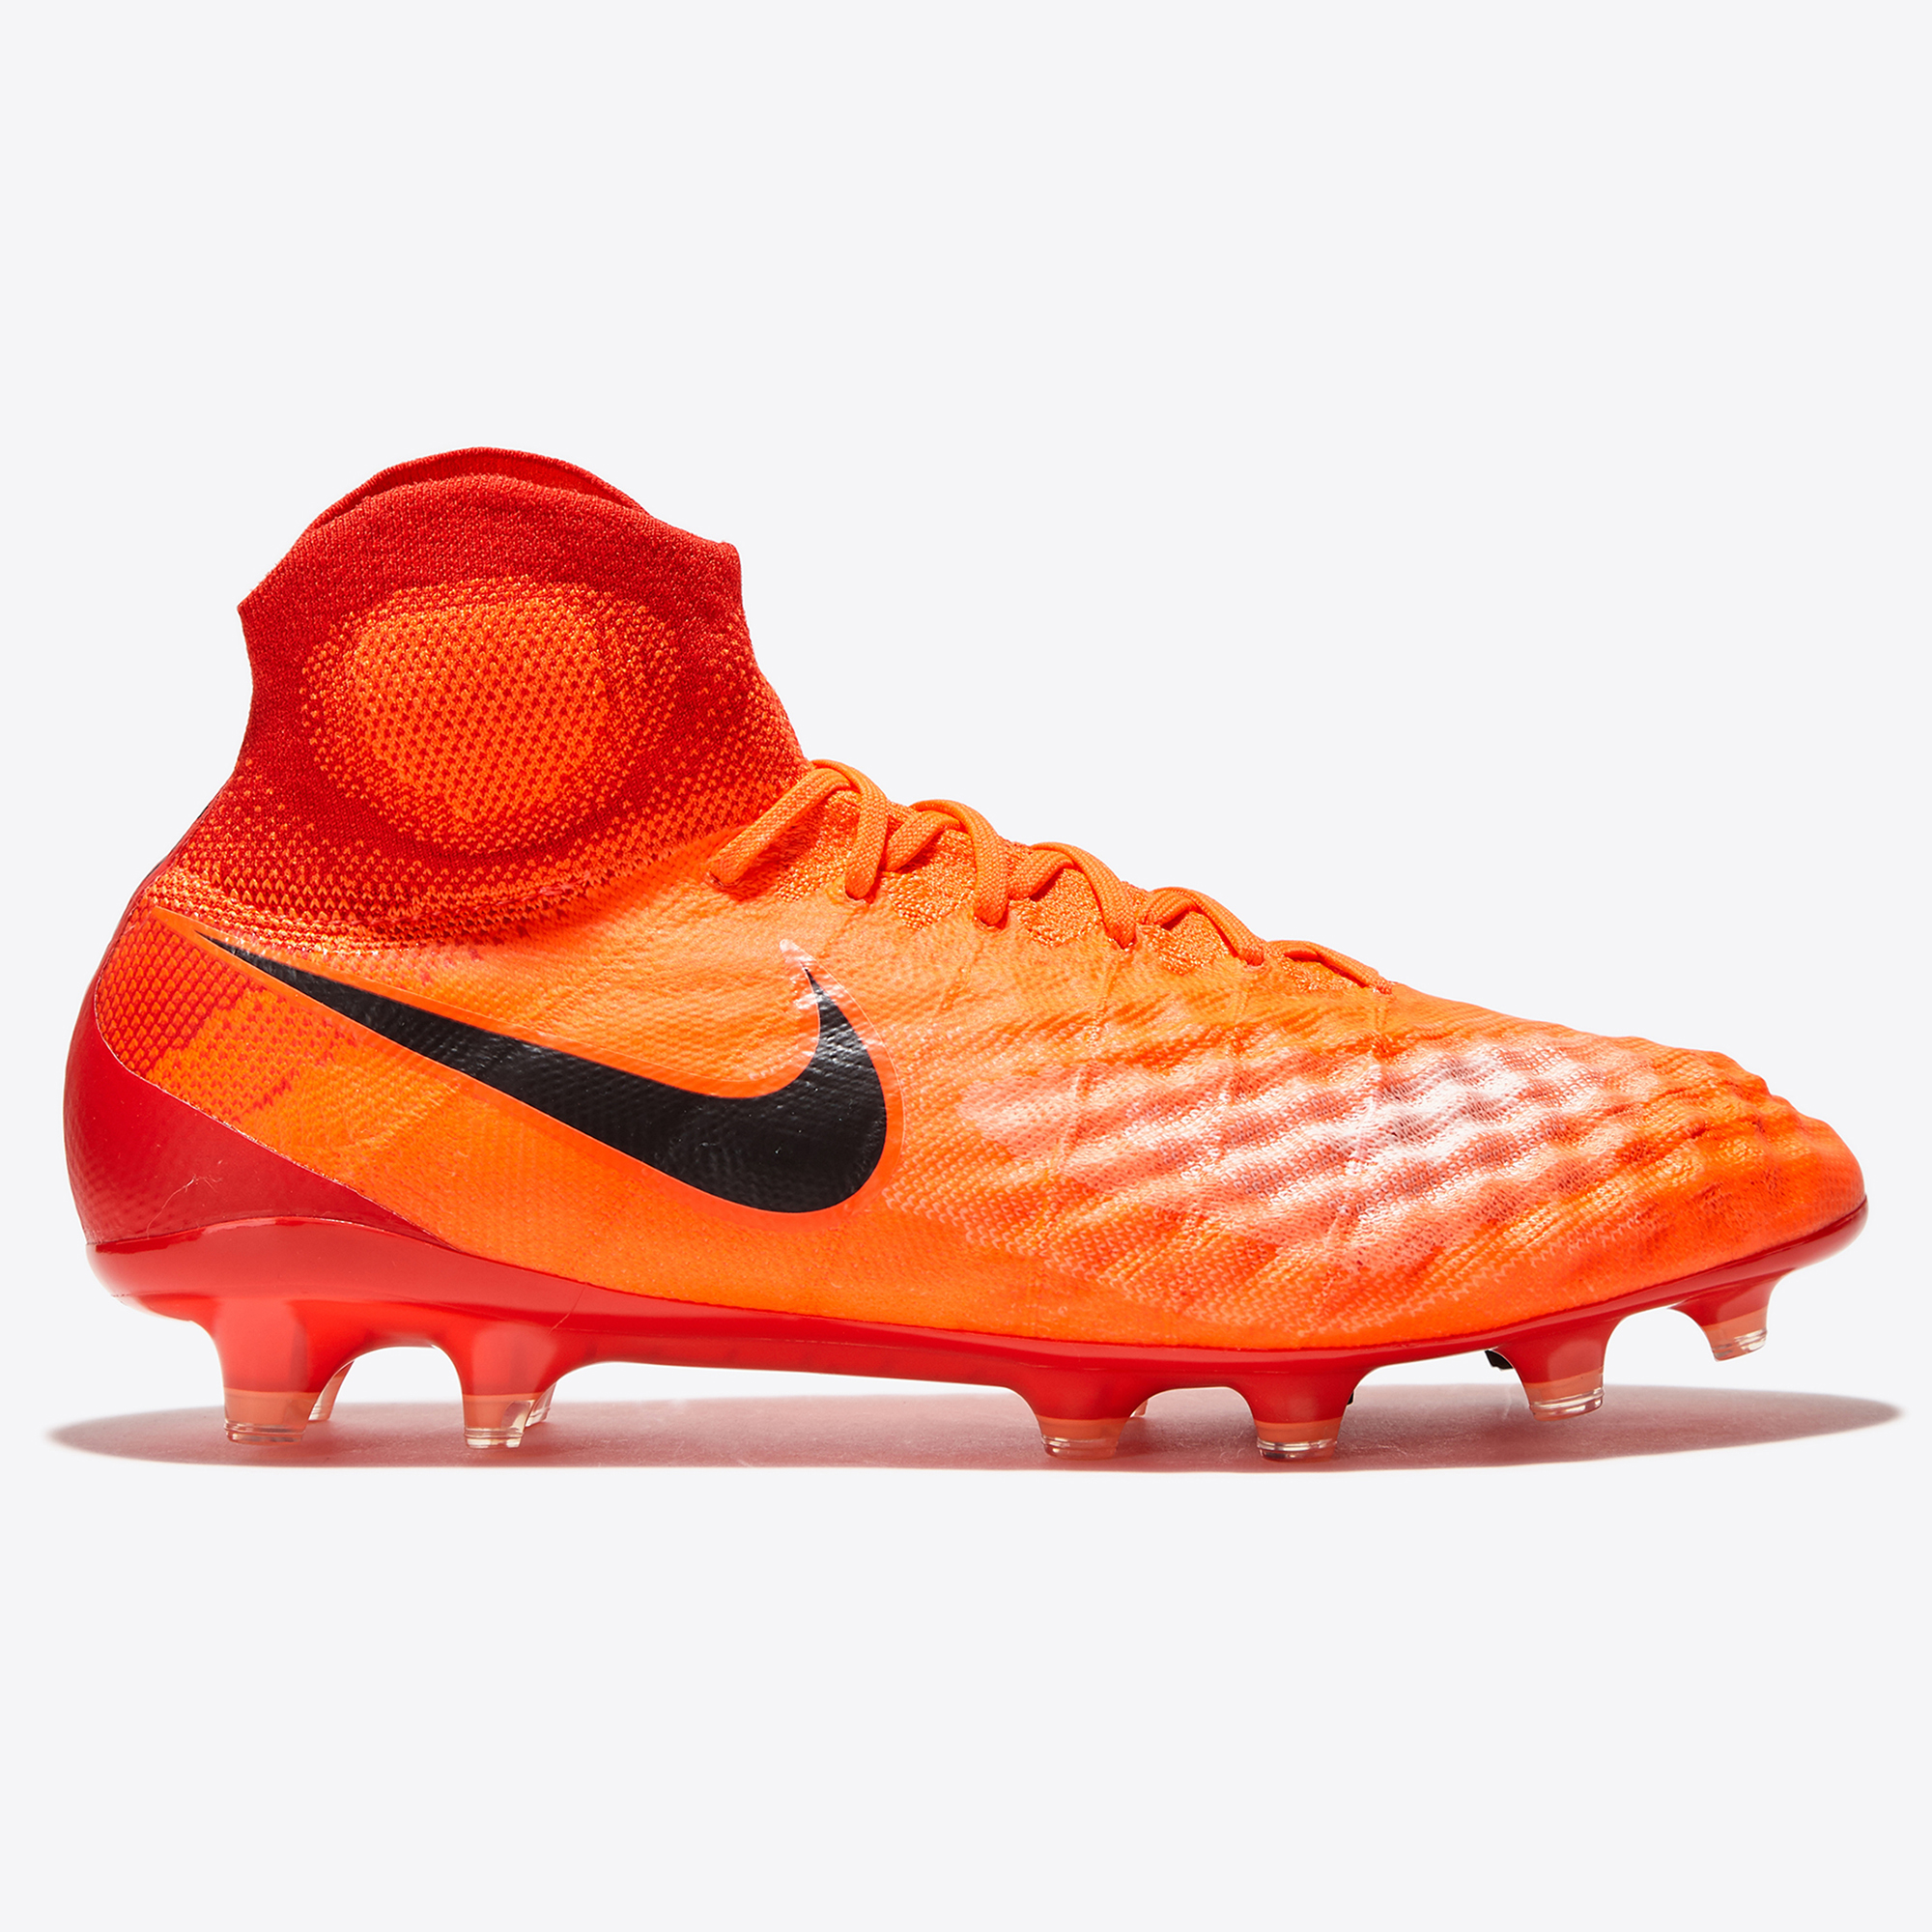 32fa34d5f4ed Buy Nike Magista Obra and Opus Rugby Boots - compare prices